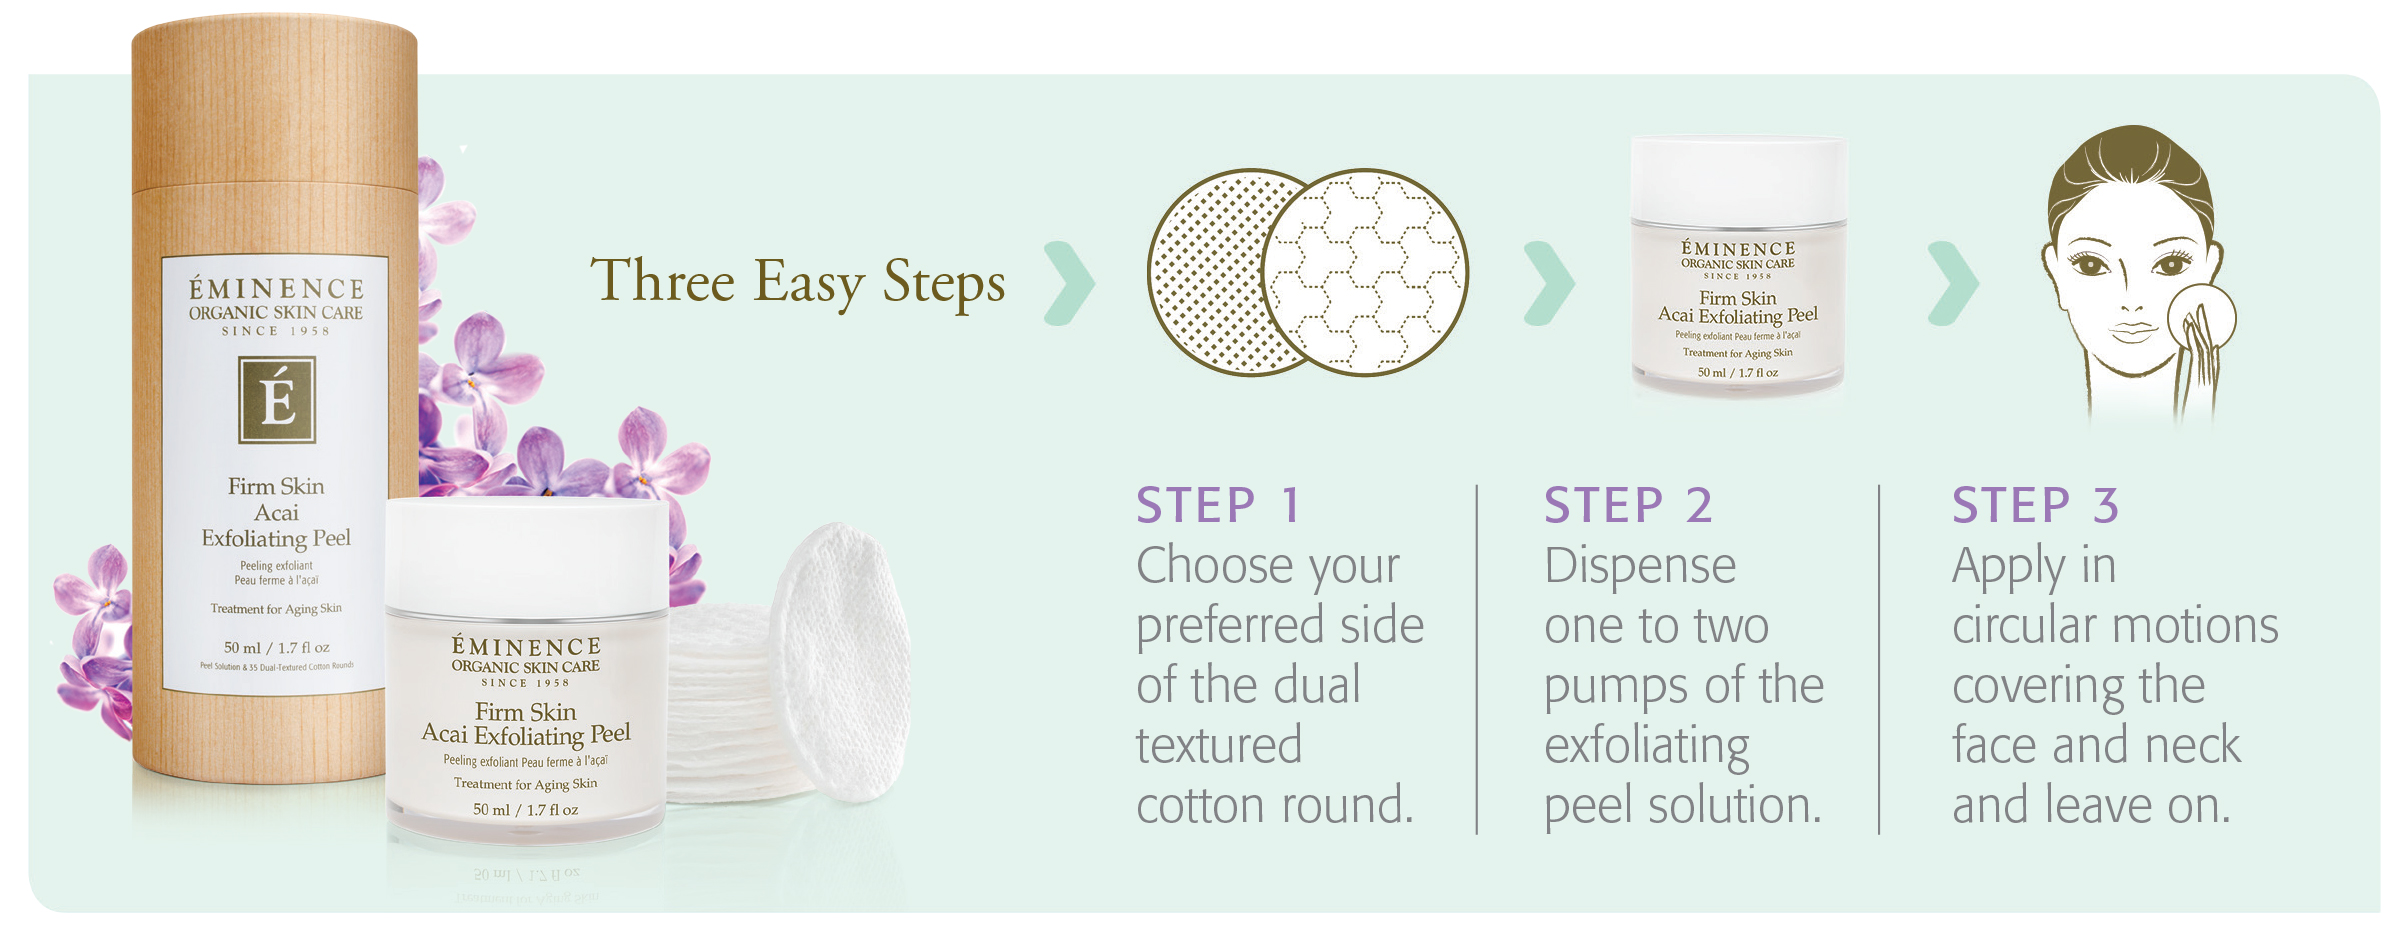 Three step guide on how to use an Eminence Organics VitaSkin™ Peel